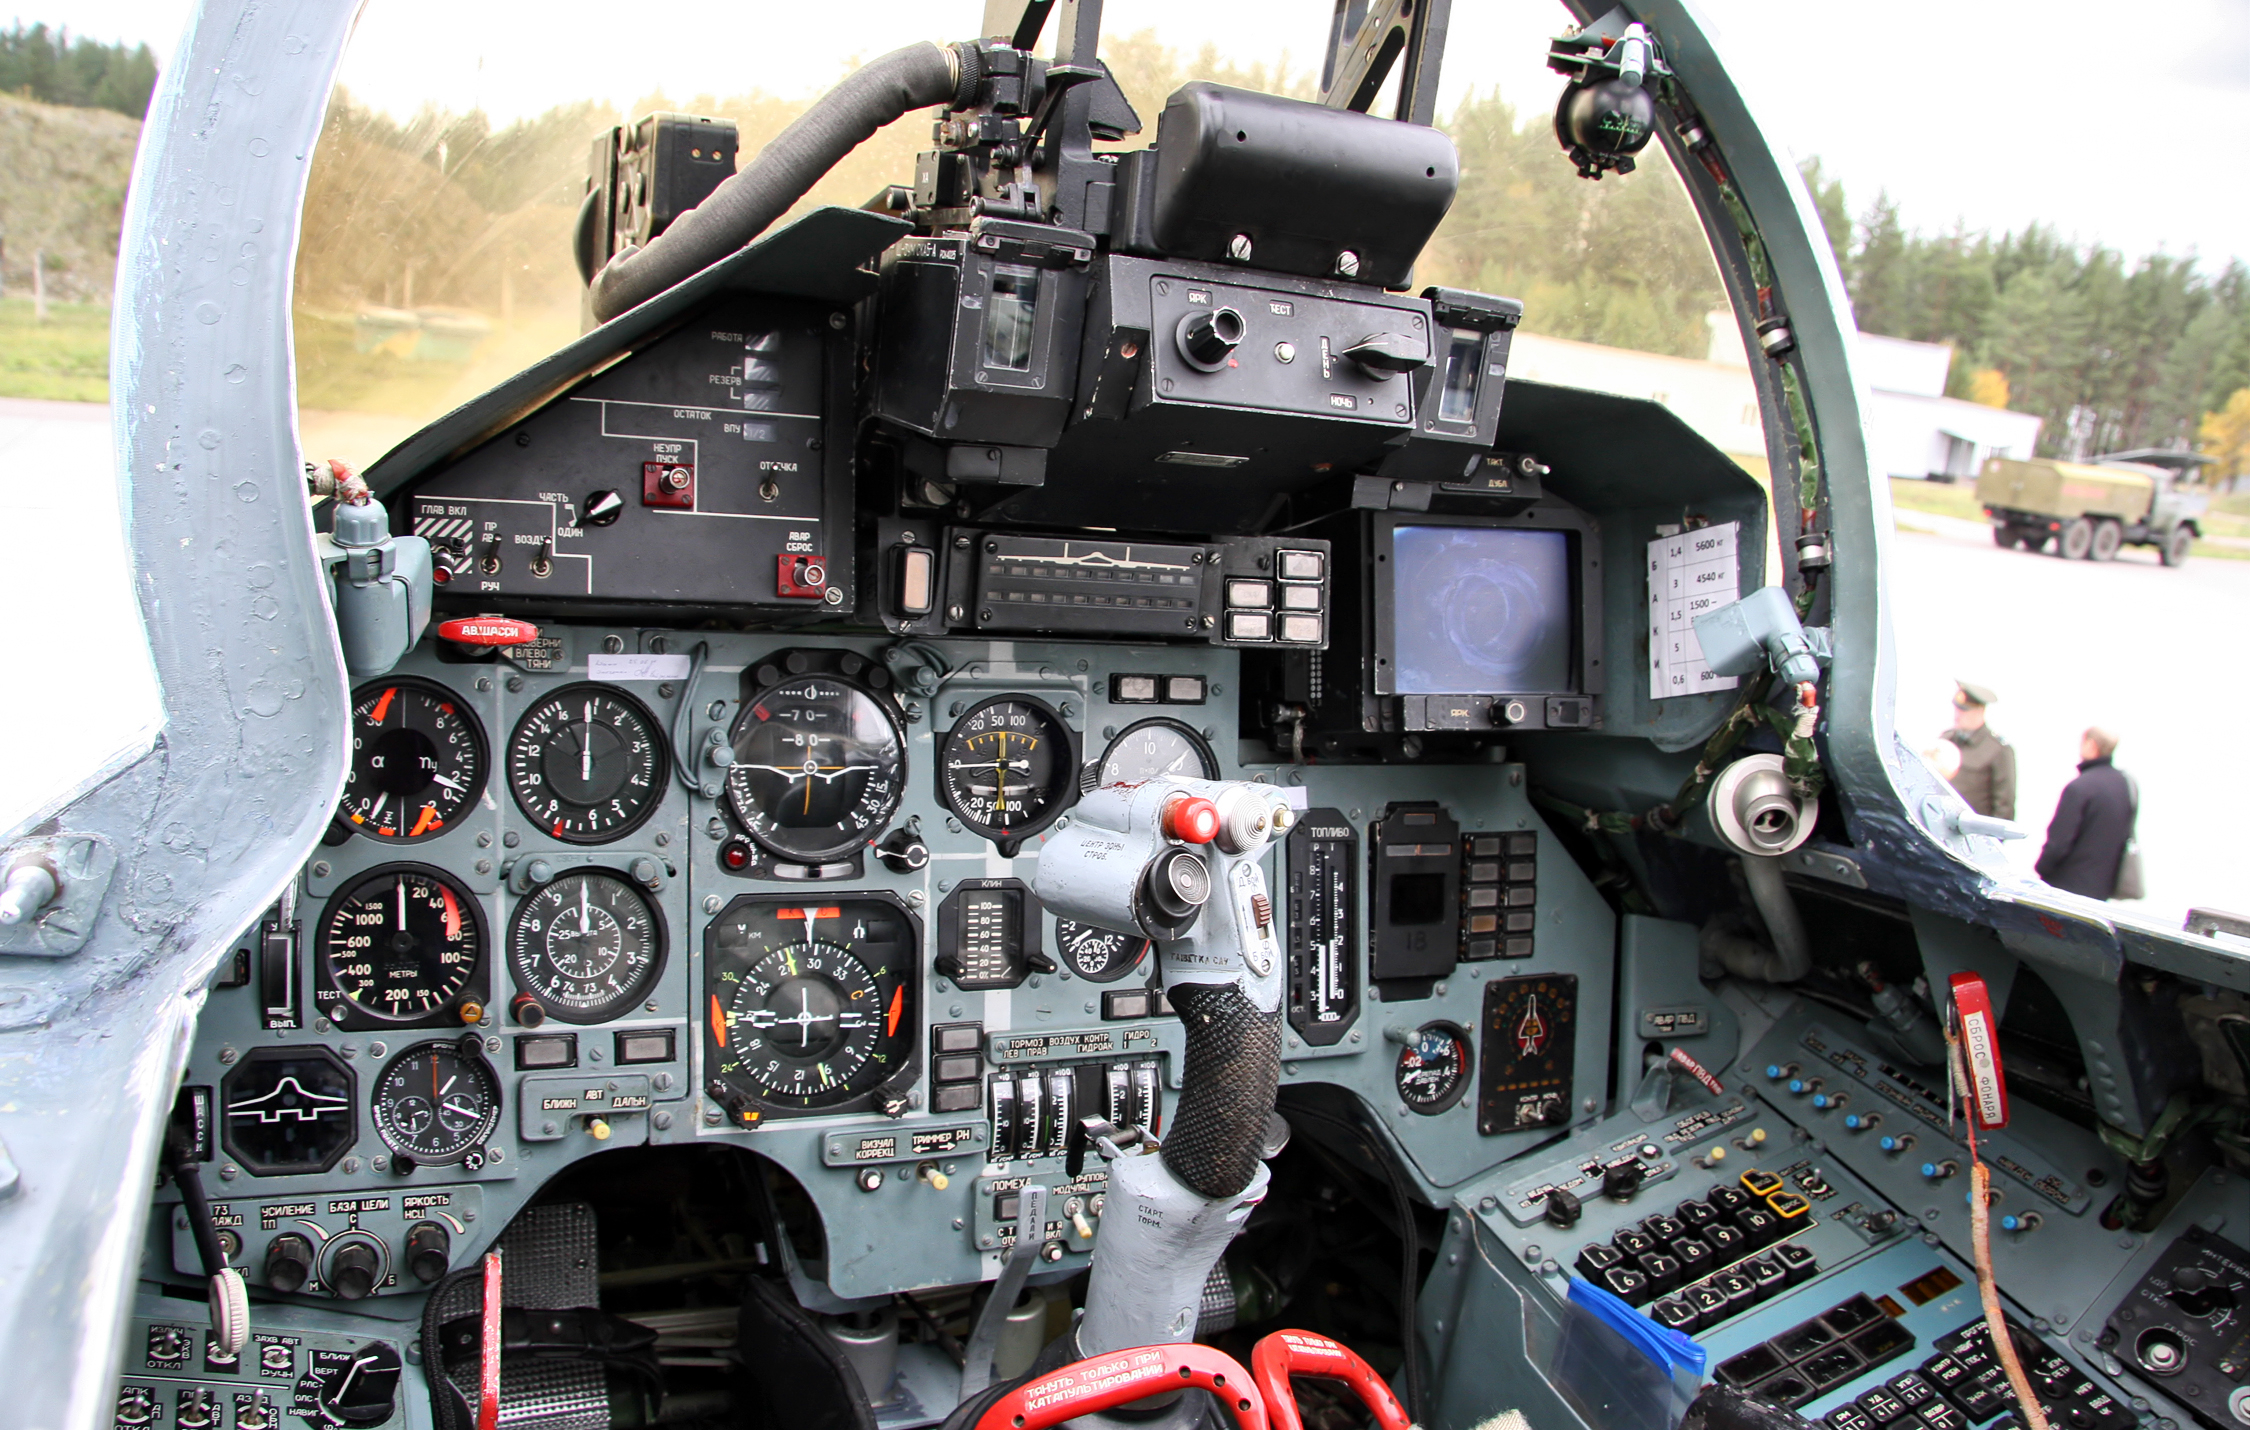 Cockpit_of_Sukhoi_Su-27_(2).jpg